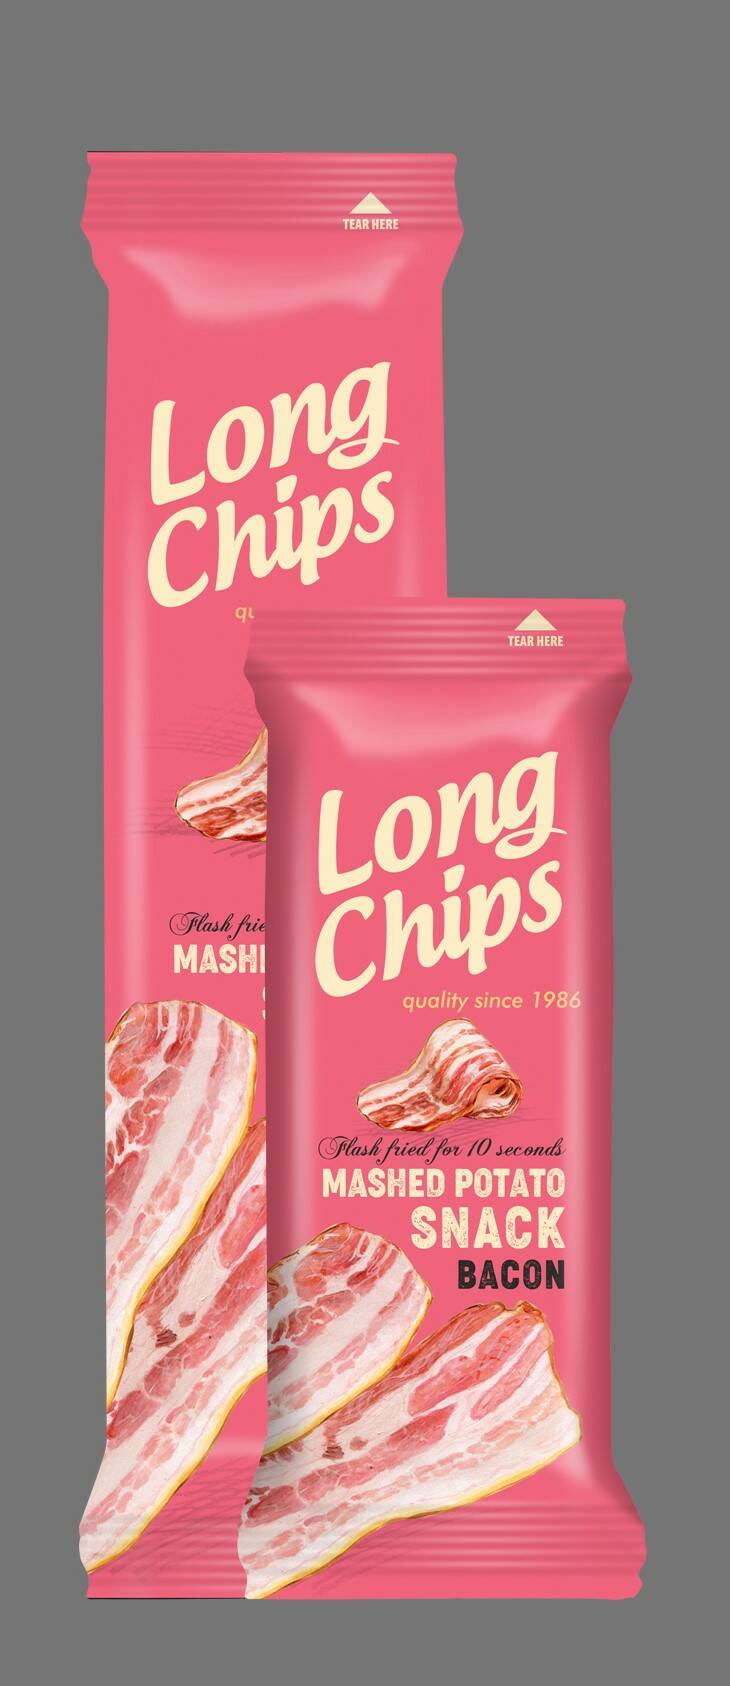 Long potato chips with bacon